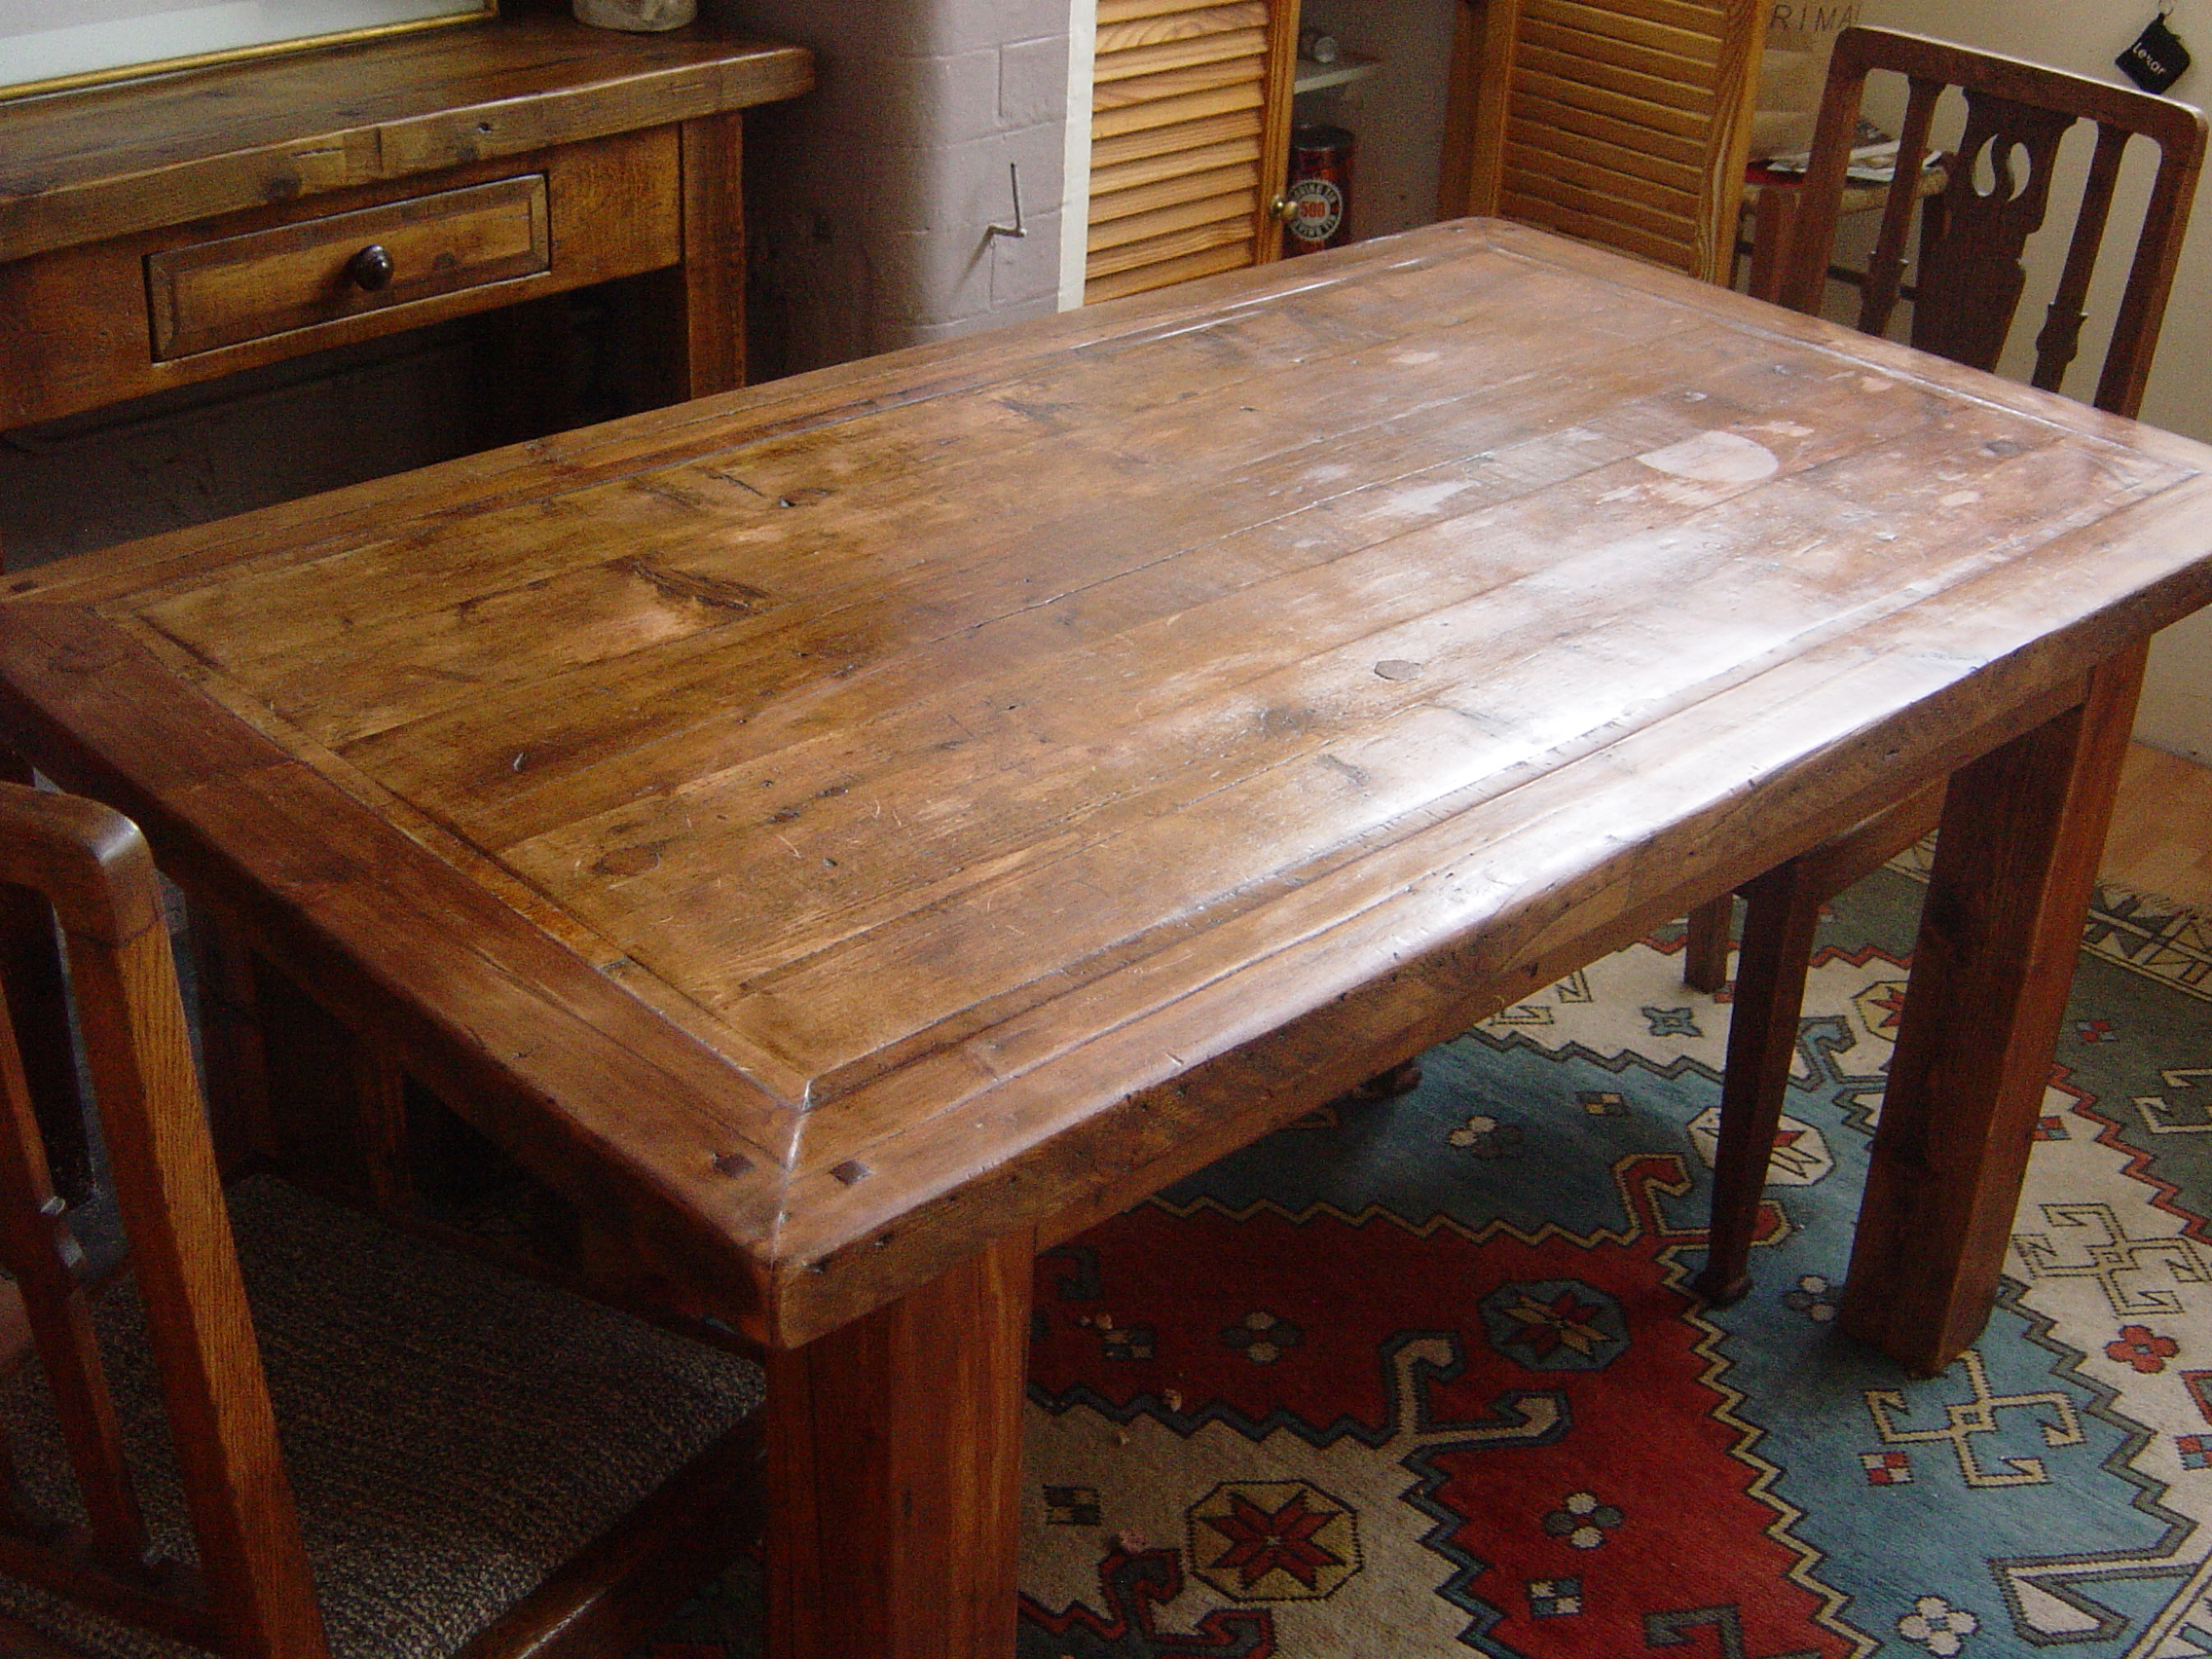 Catalogue Dining Tables and Chairs kitchen table cooking school Please note Although photos were taken in outdoors this table